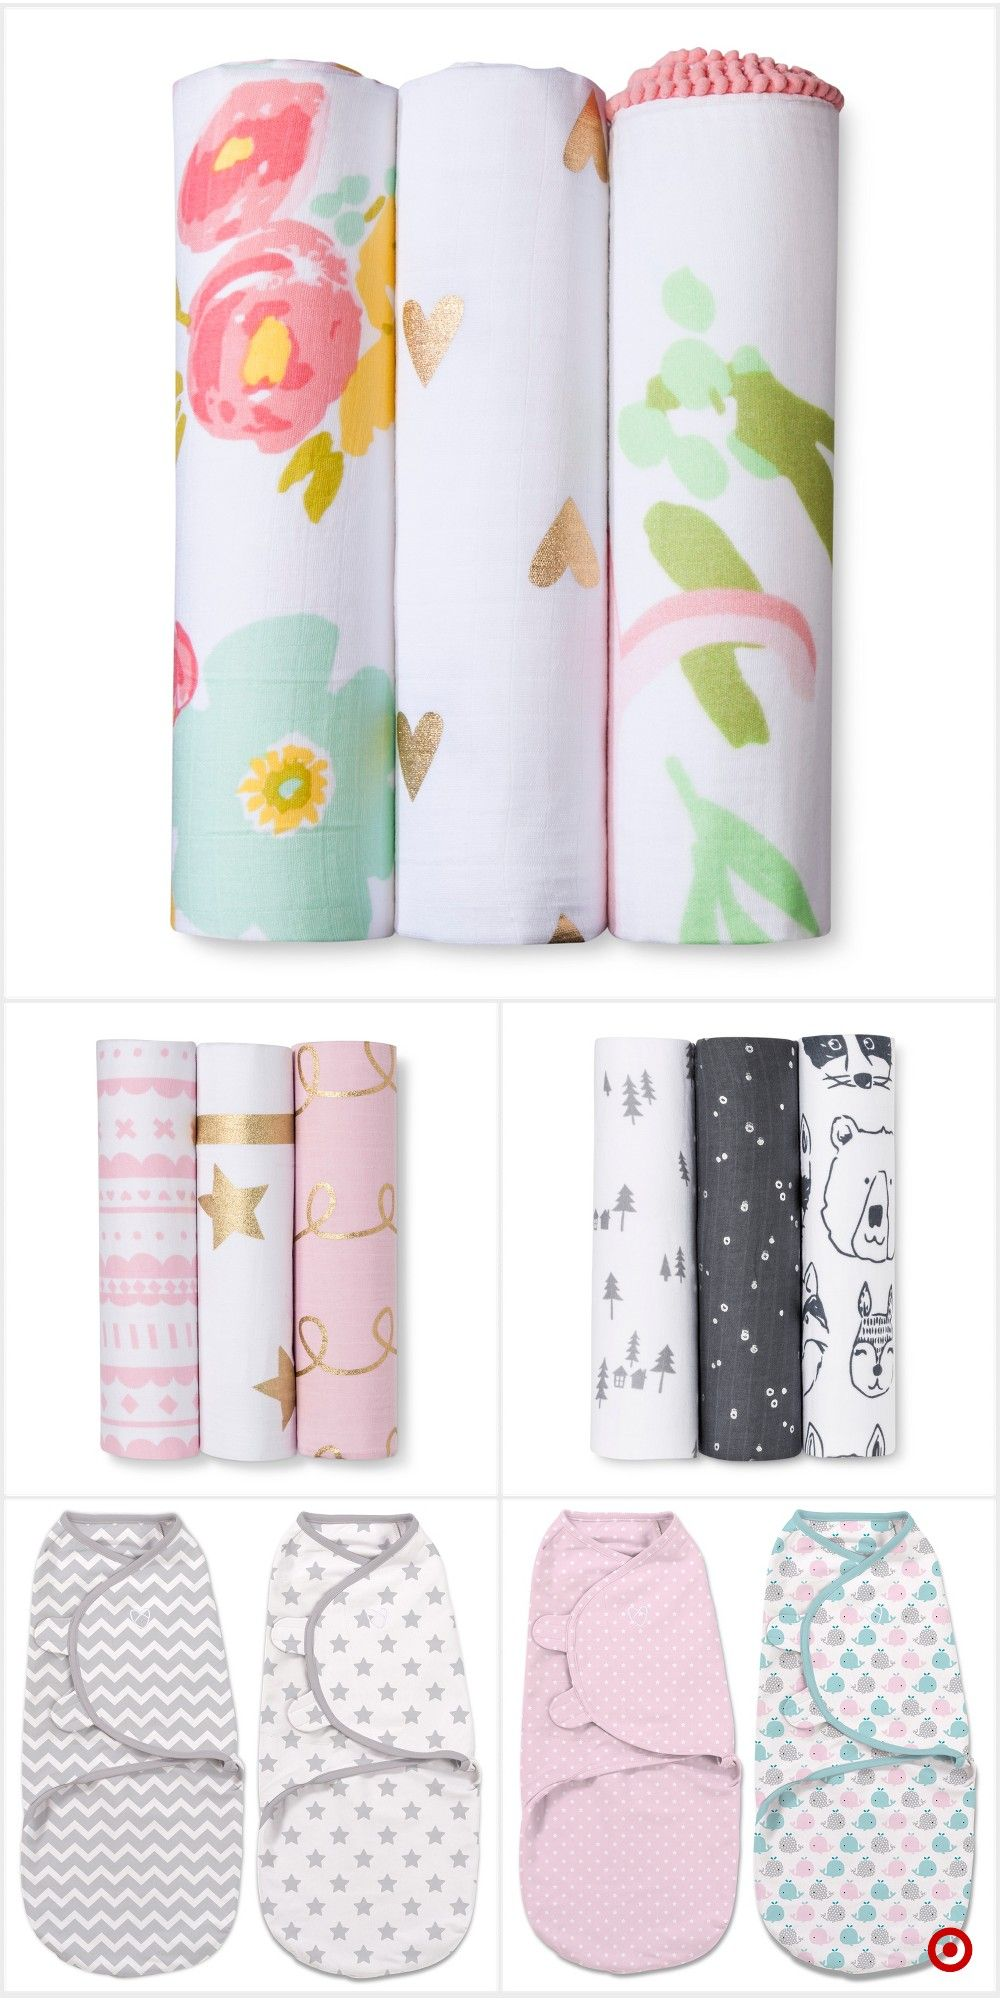 Swaddle Blankets Target Amusing Shop Target For Swaddle Blanket You Will Love At Great Low Prices Review